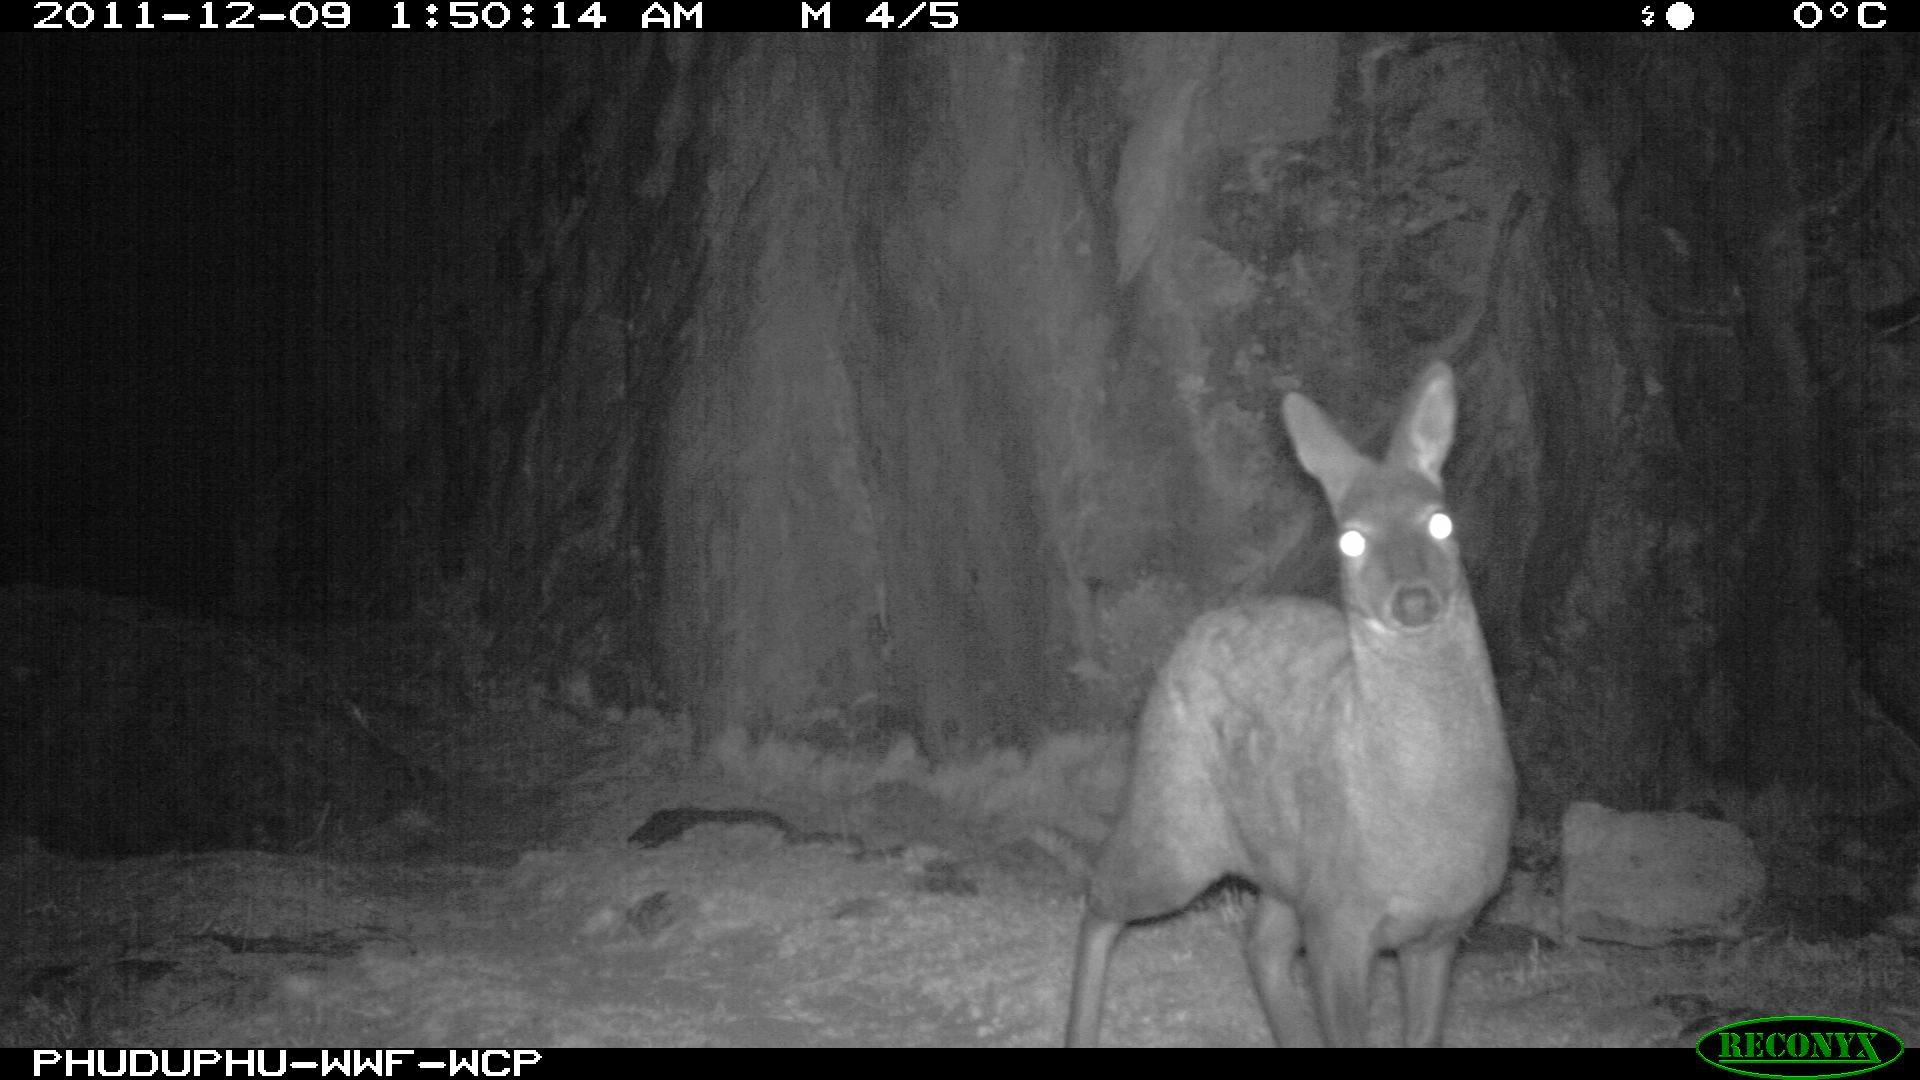 Musk deer, night-time camera trap image, Wangchuck Centennial Park, Bhutan, October-November 2011 © Royal Government of Bhutan (DoFPS) and WWF